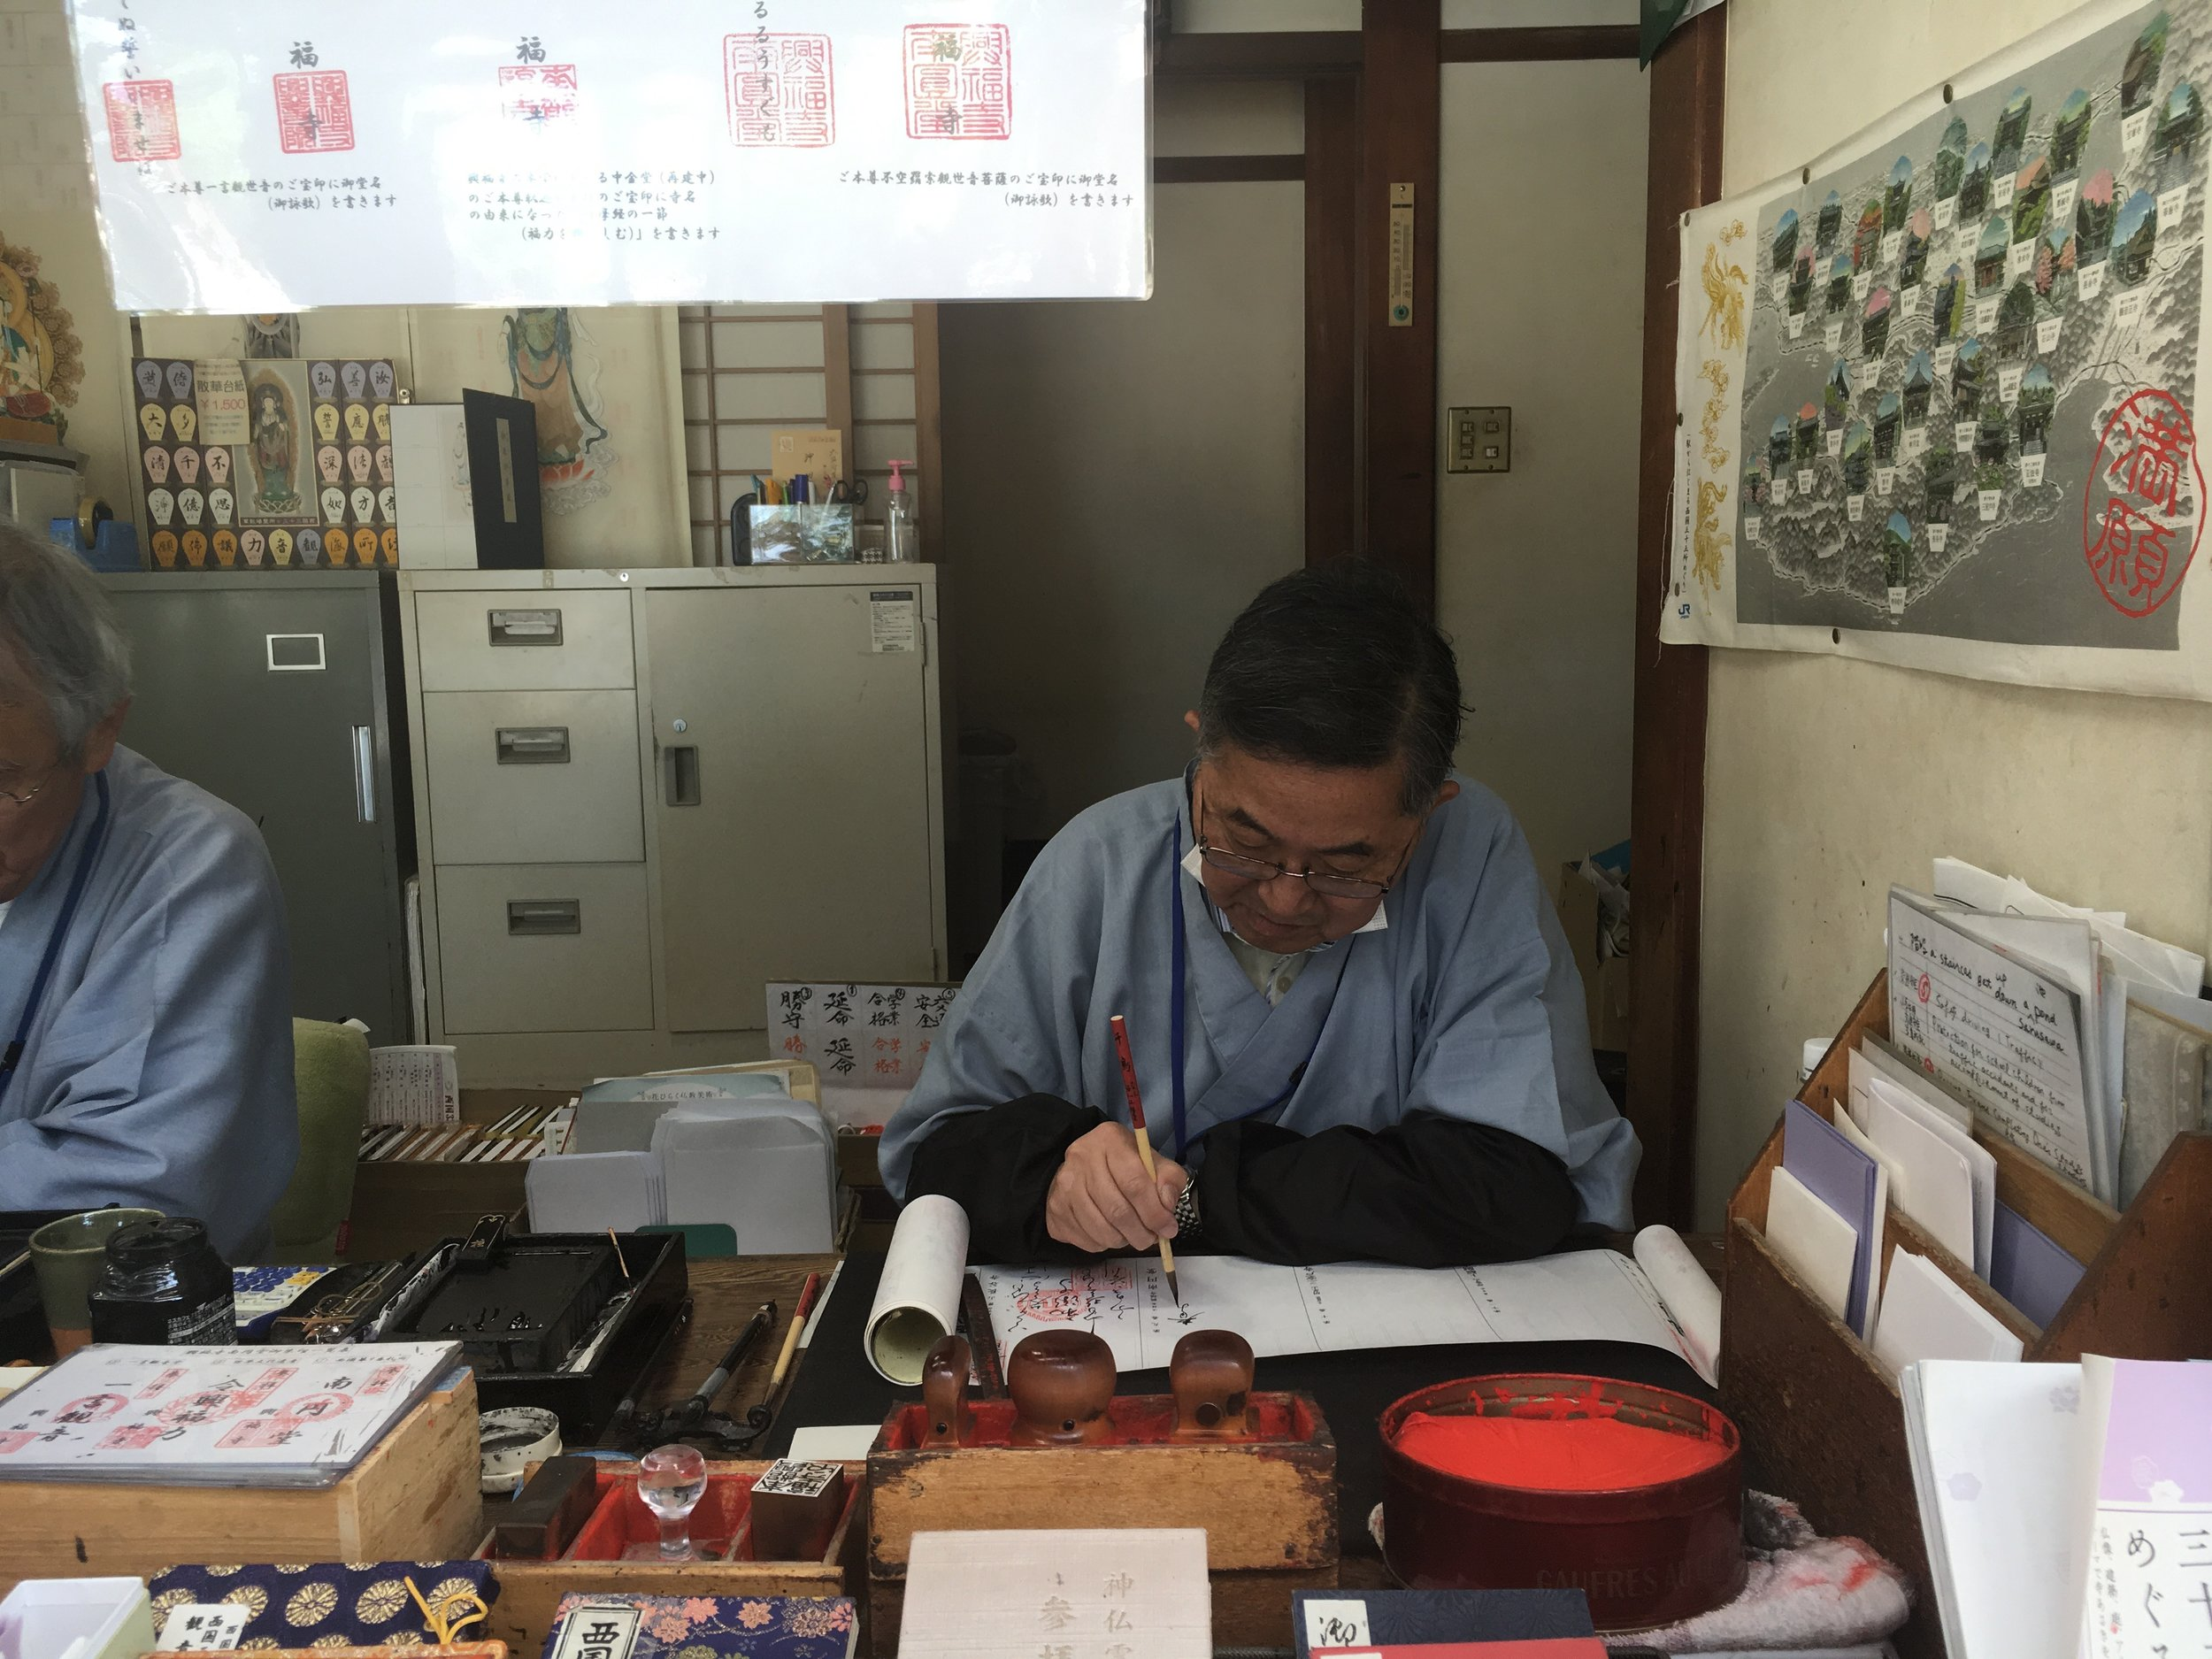 A Monk who signed our book we purchased at the store. The stamp and calligraphy were simply beautiful.